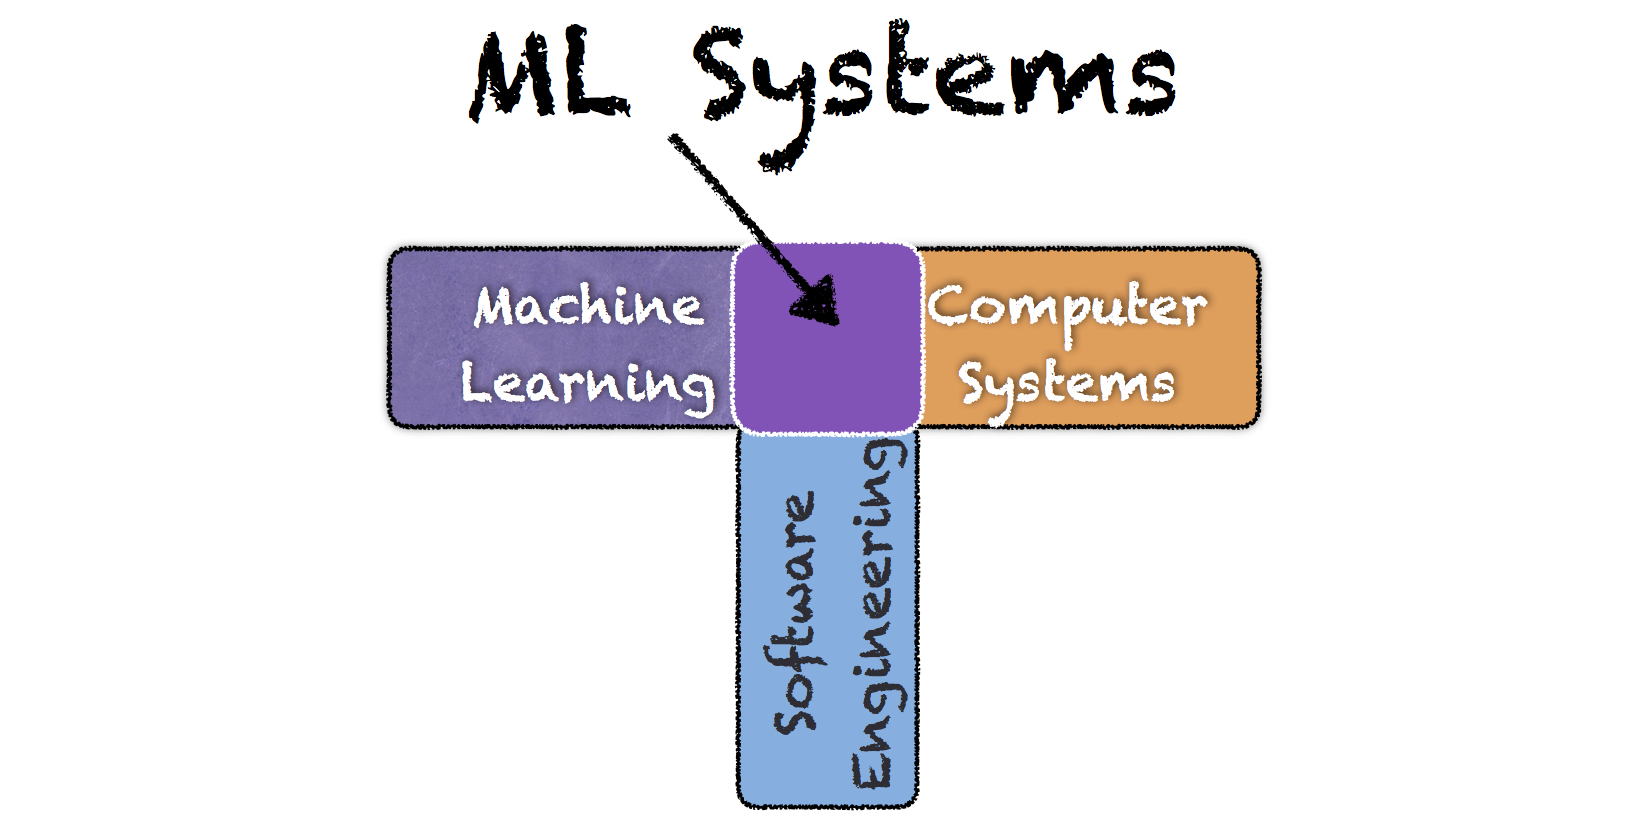 New to machine learning? Not sure how ML works in production? You're welcome to follow and learn from this graduate-level course.